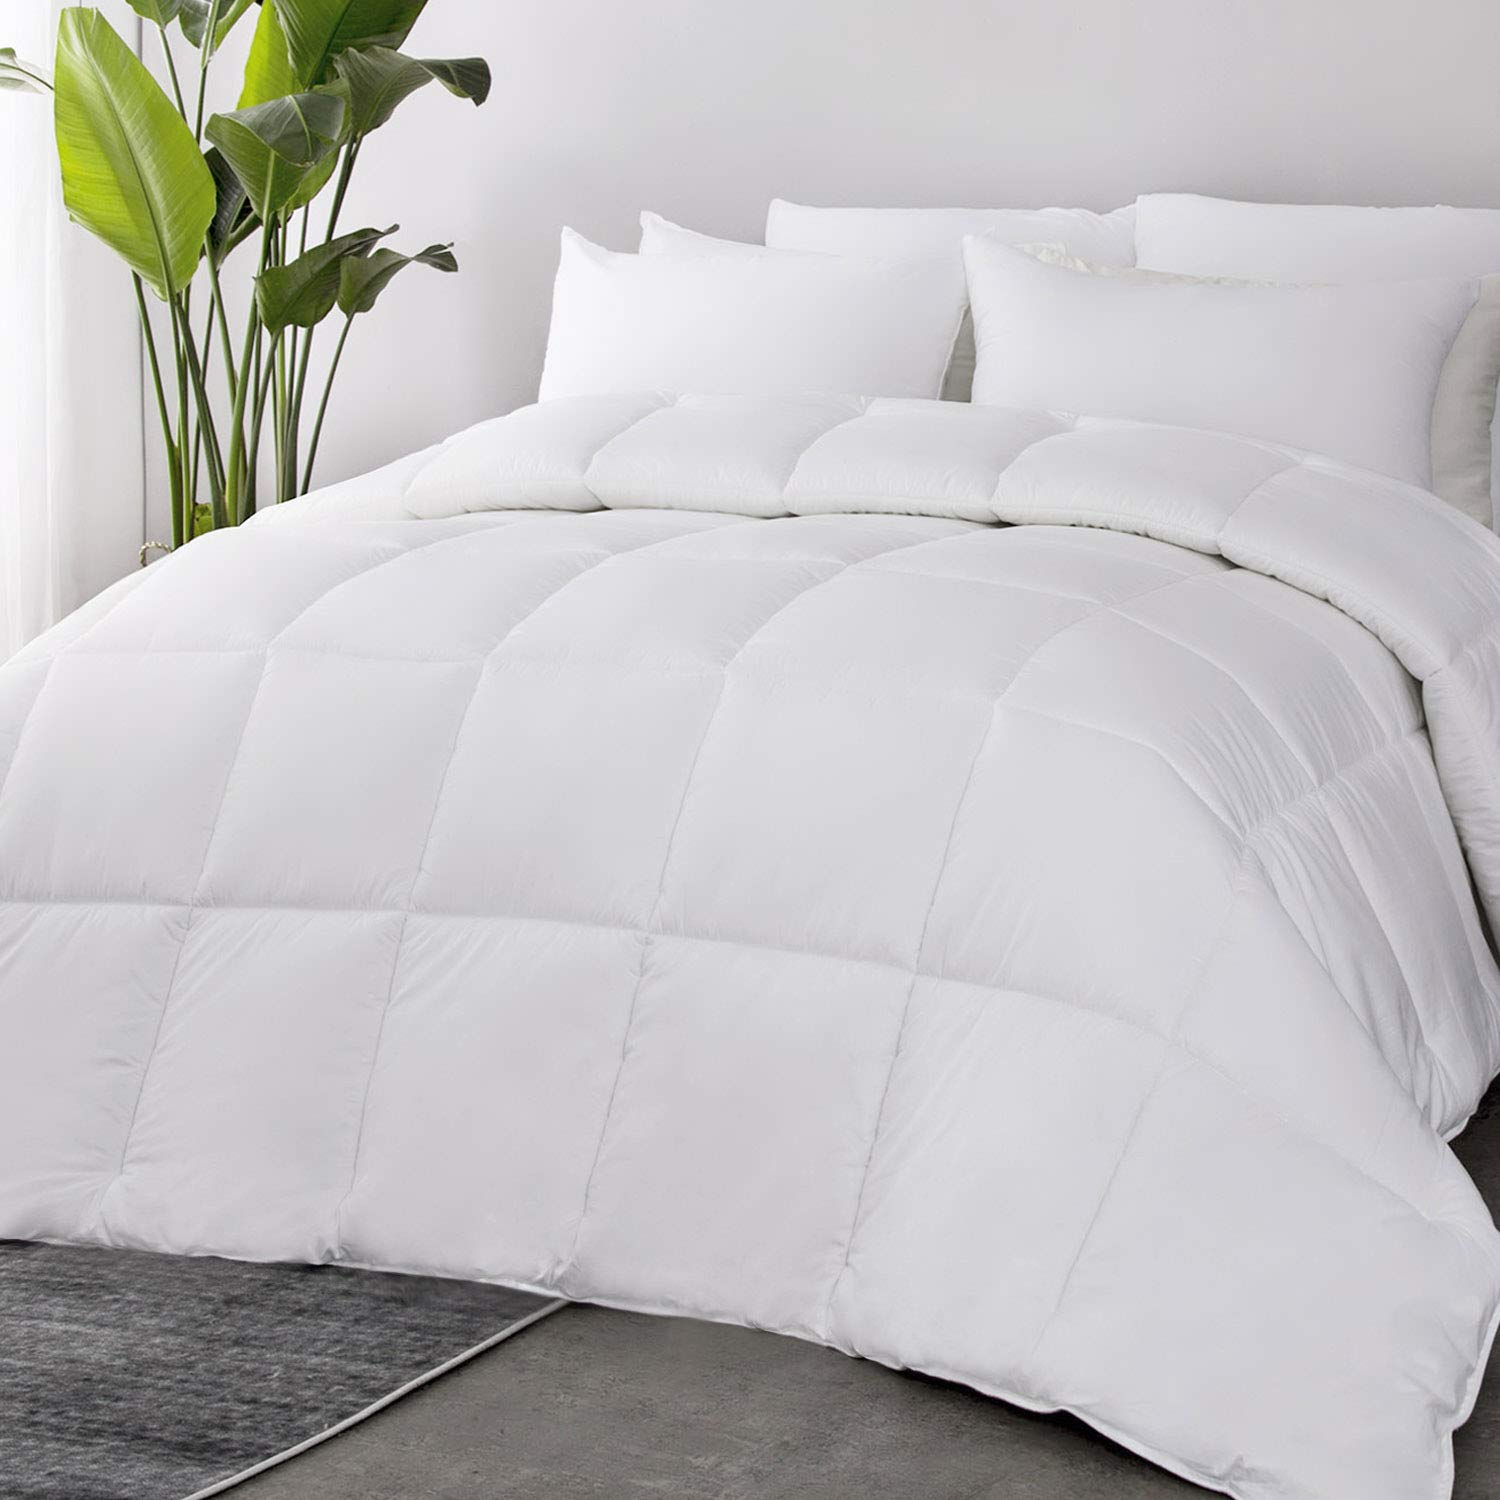 Bedsure 100% Cotton All-Season Quilted Down Alternative Comforter Queen with Corner Tabs - 60OZ Lightweight&Fluffy Plush Microfiber Fill in Whole Piece, Machine Washable with No Clumping Duvet Insert